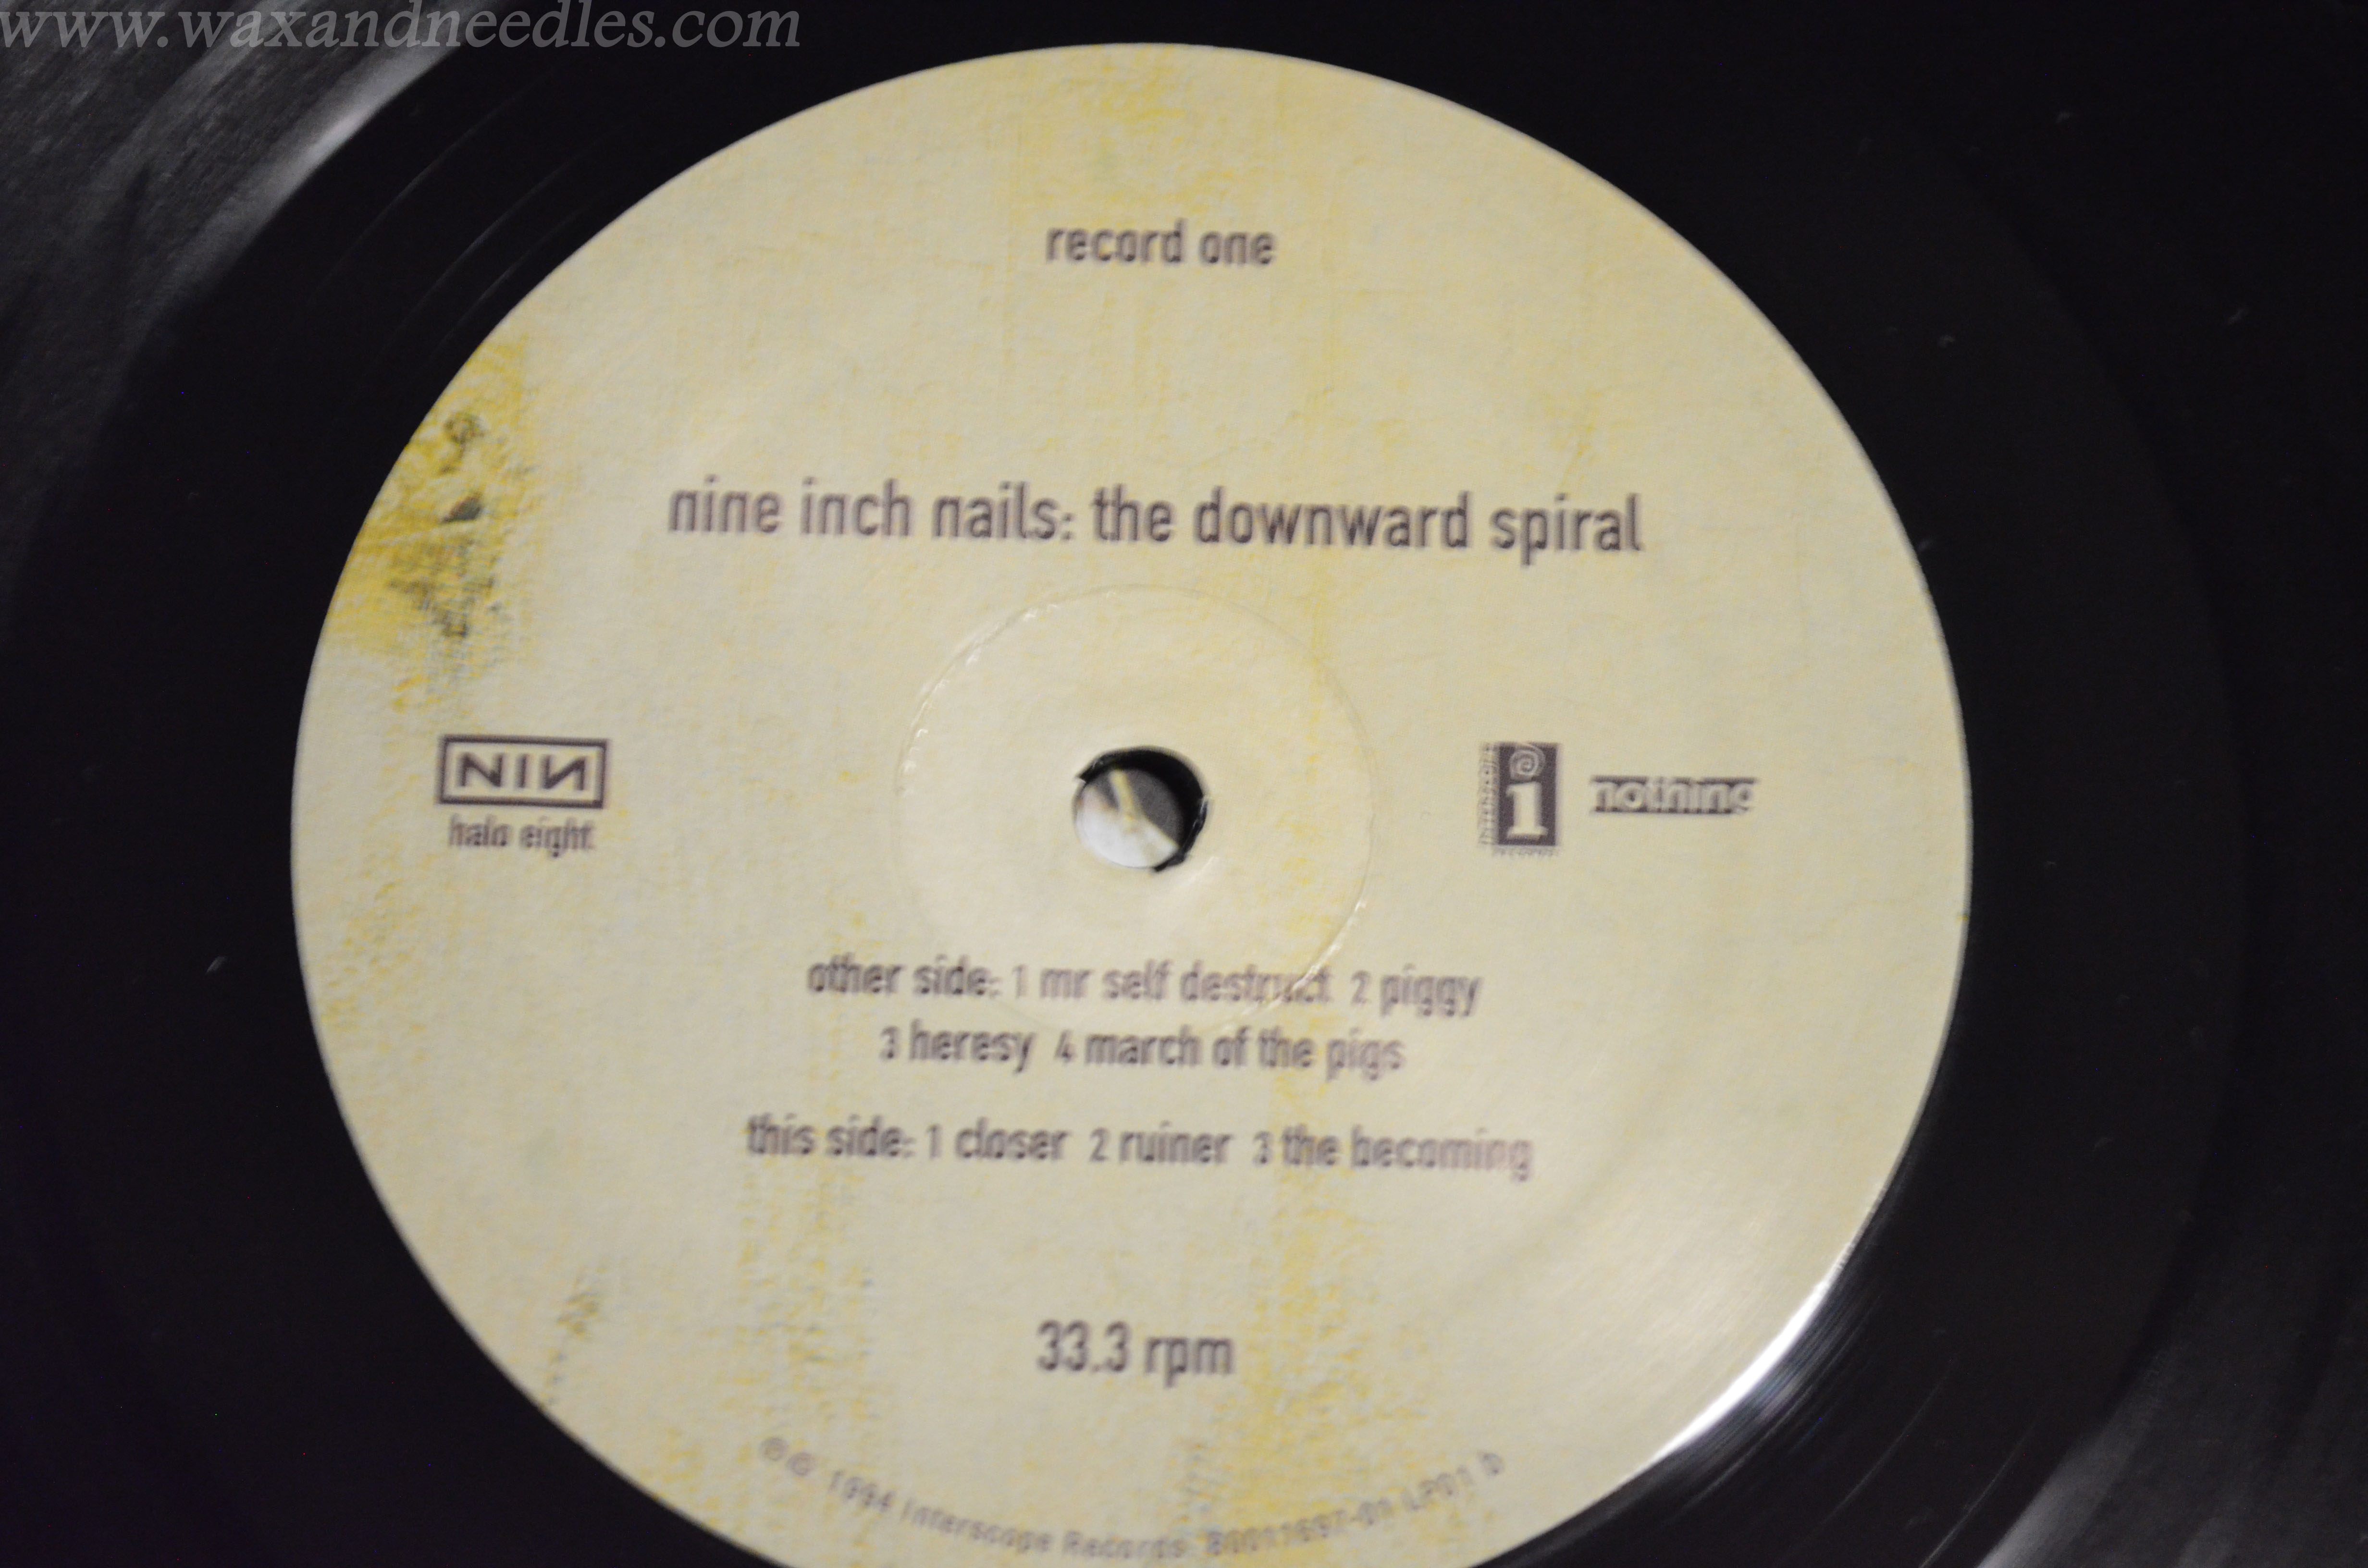 Nine Inch Nails – The Downward Spiral – 2 x LP | wax and needles